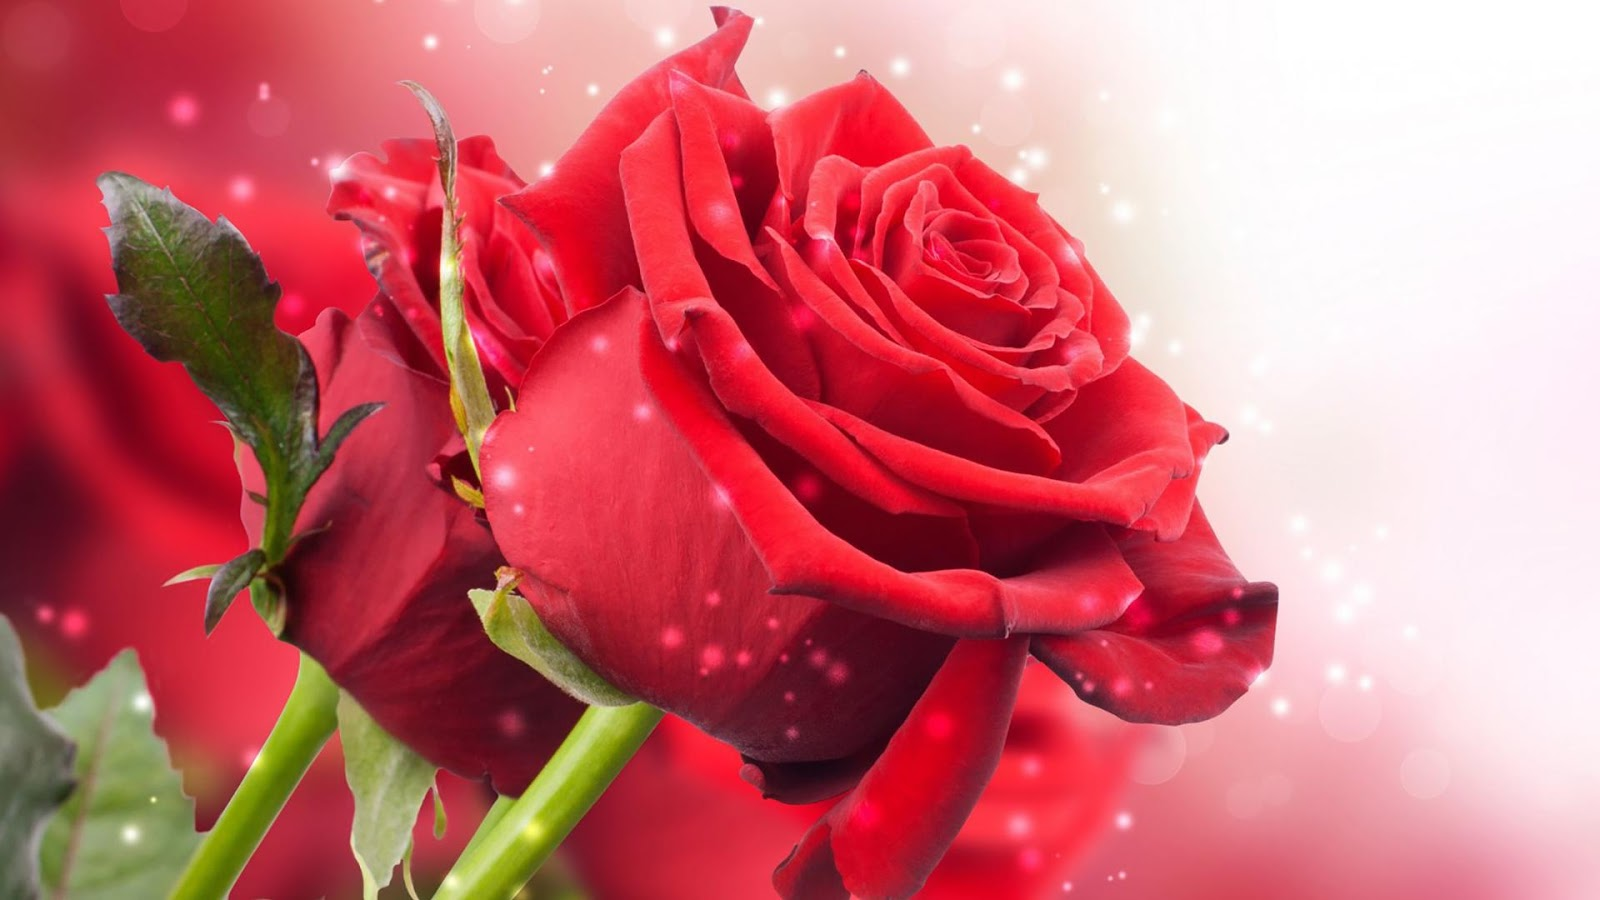 Red Rose Wallpapers Free Download Group  1600x900